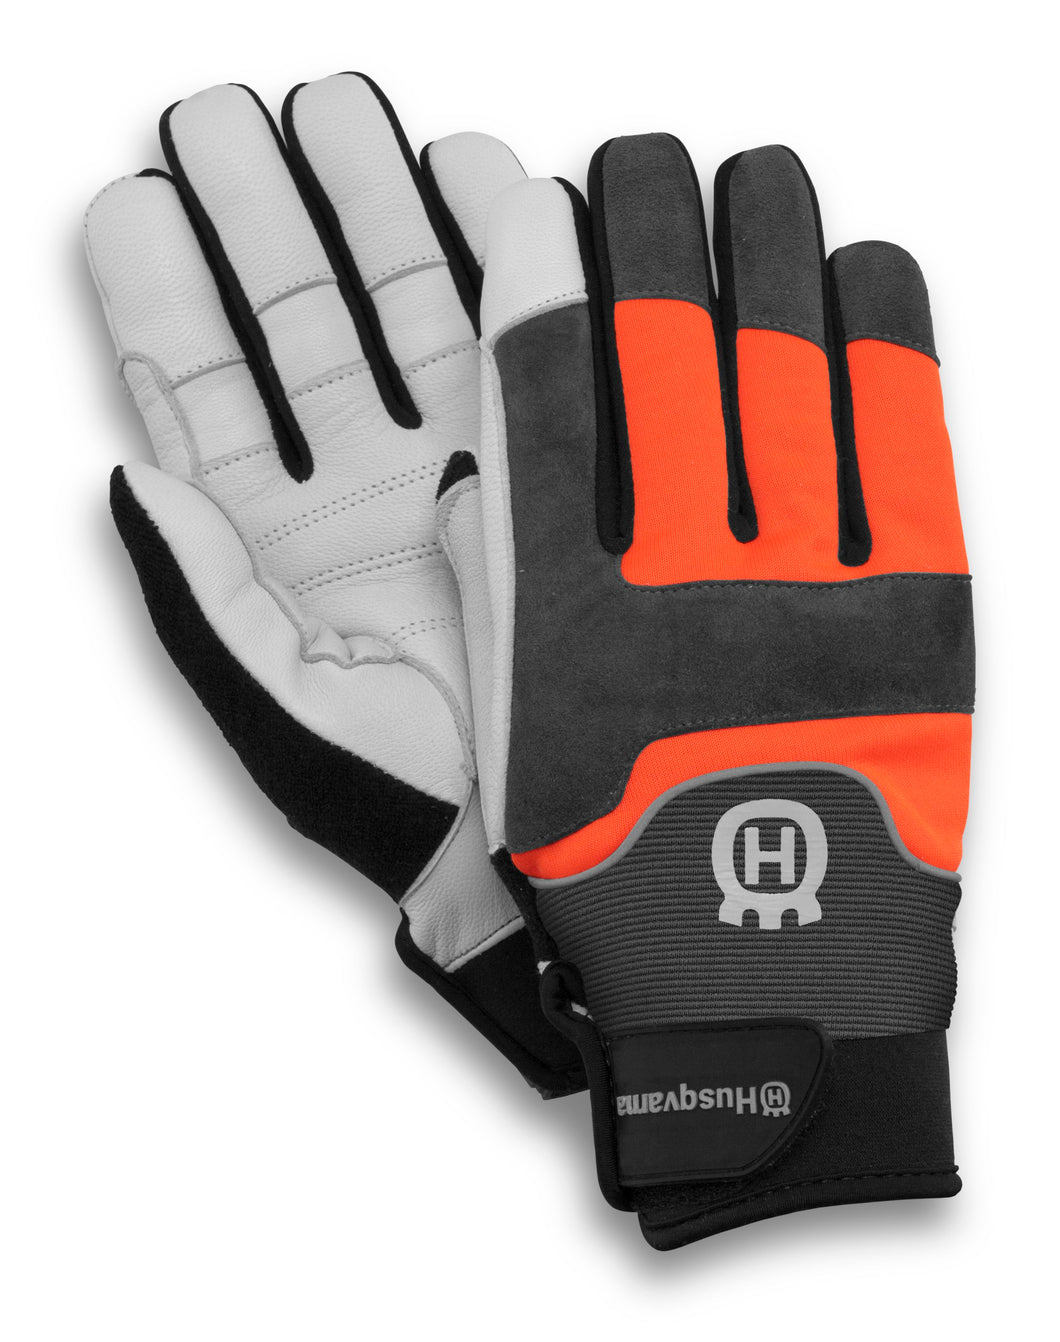 Husqvarna Technical Gloves - Without Saw Protection